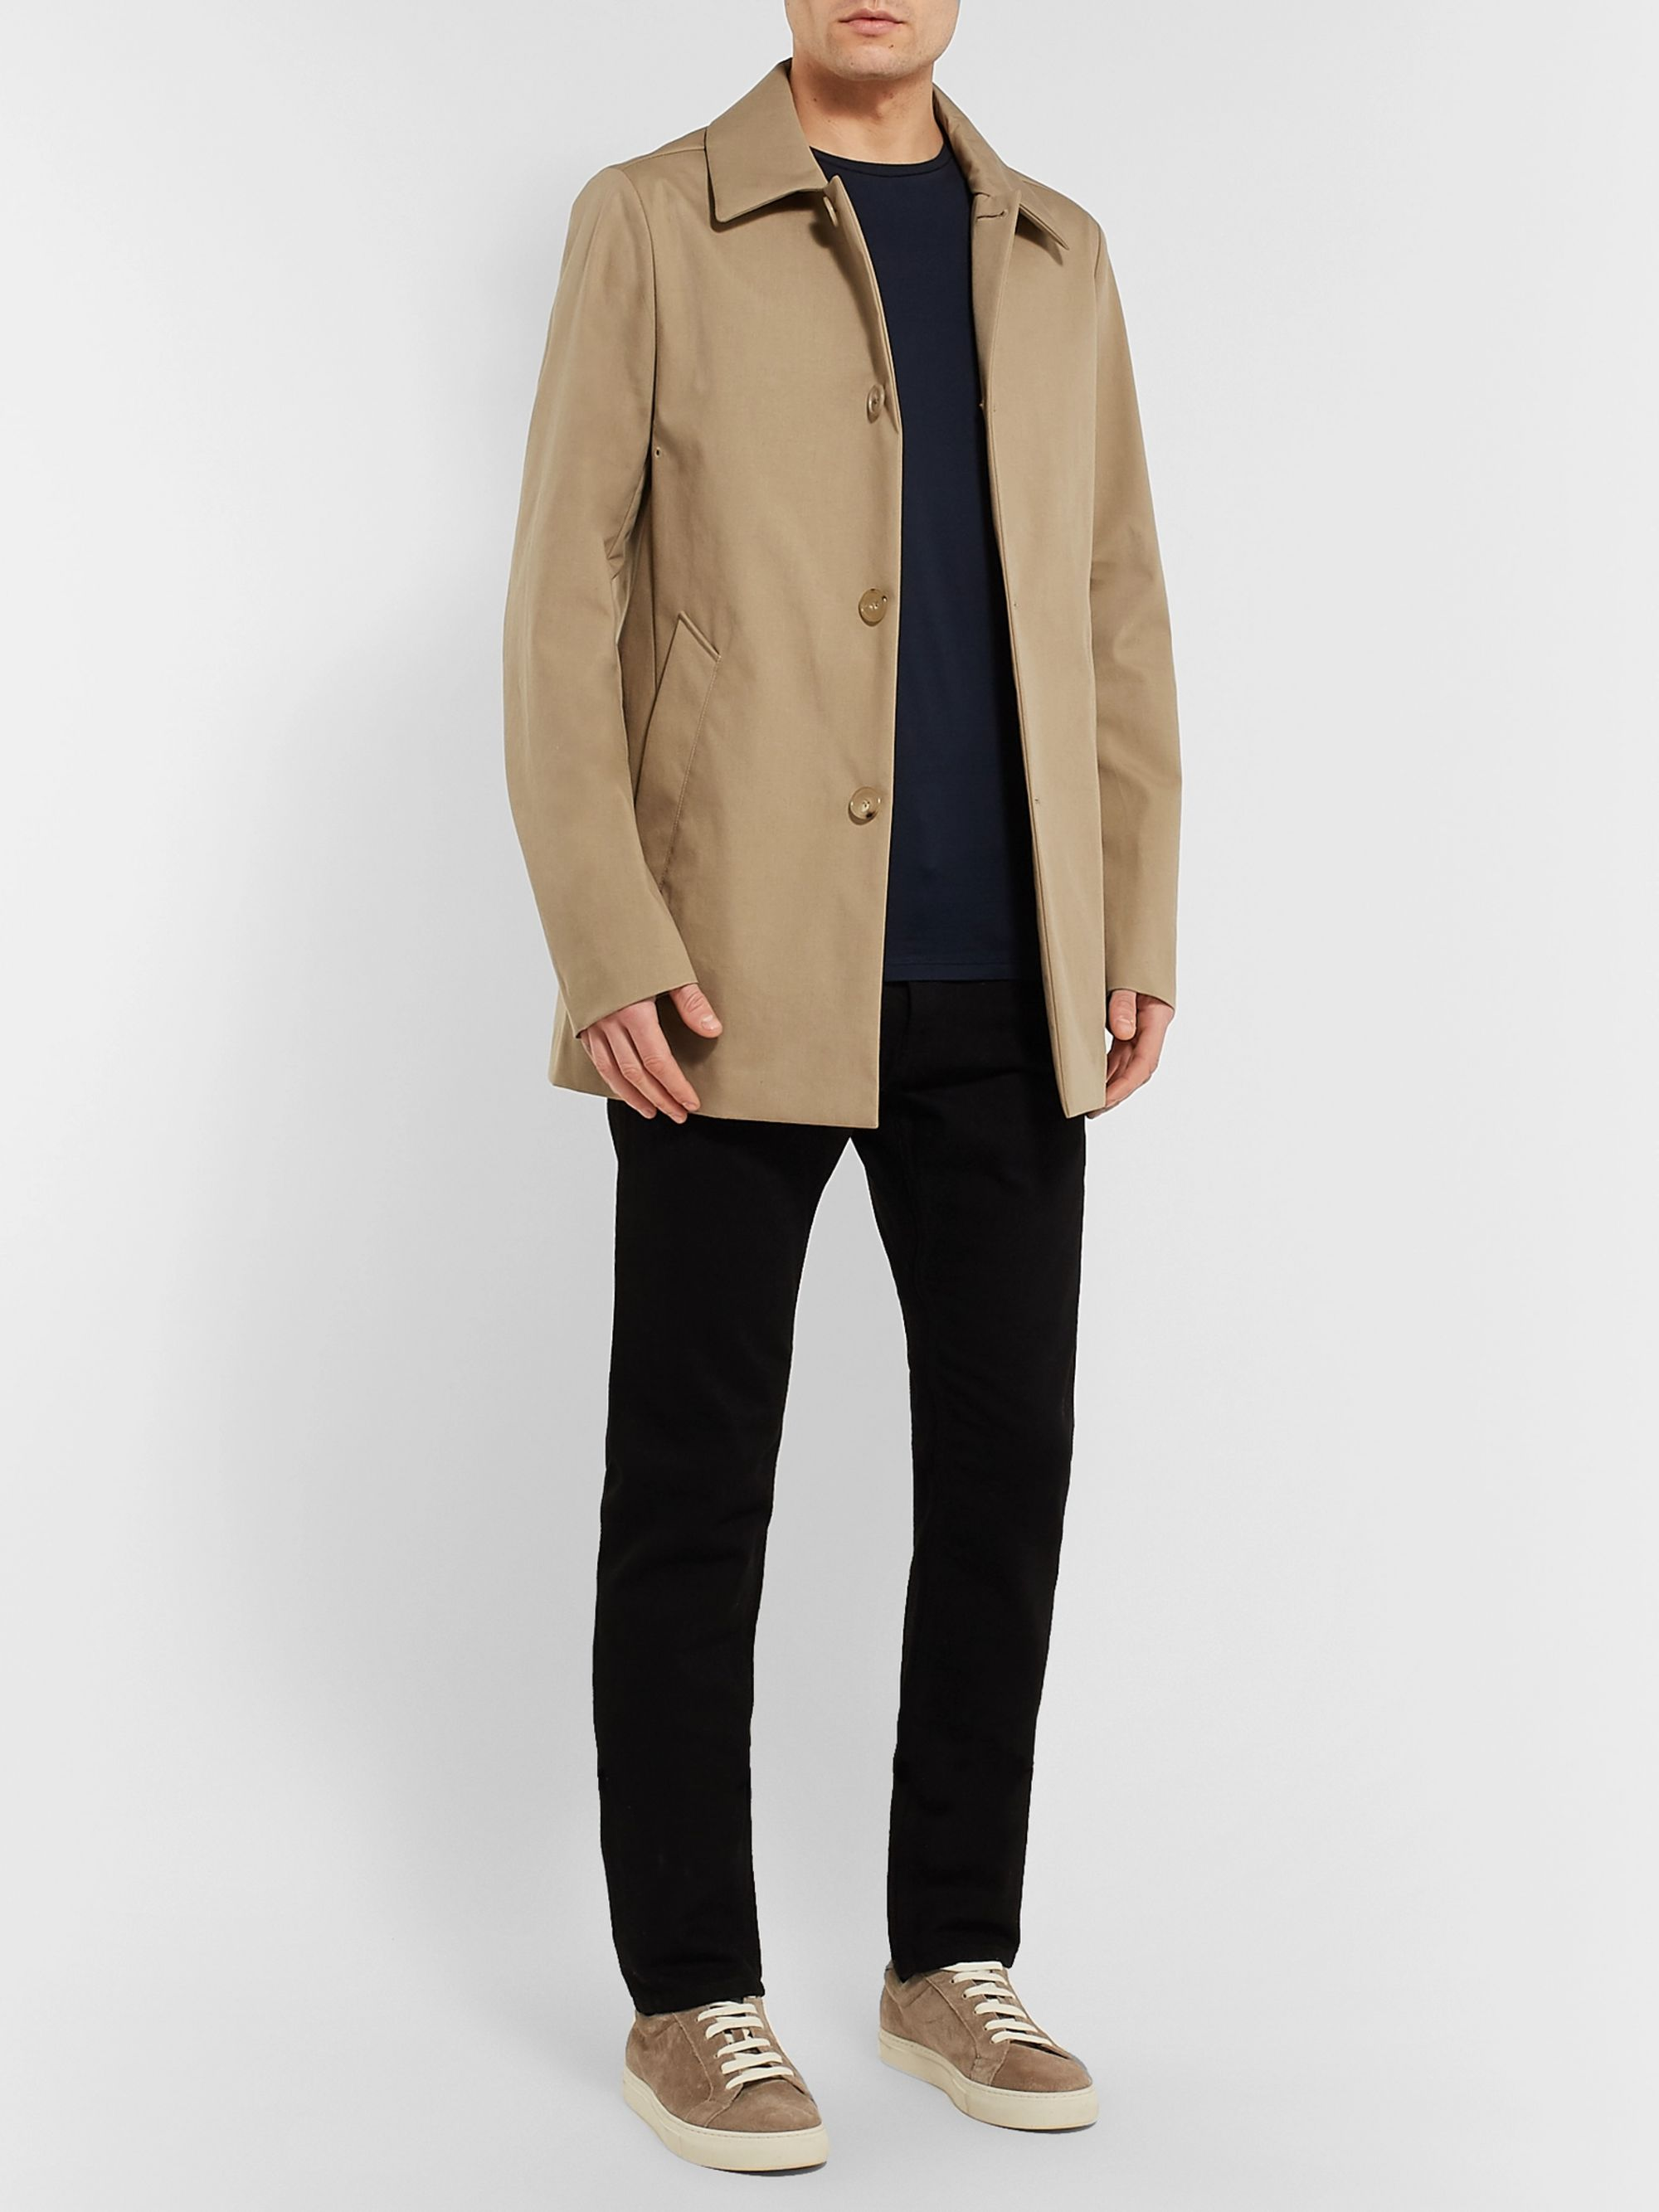 SALLE PRIVÉE Nathan Slim-Fit Woven Coat